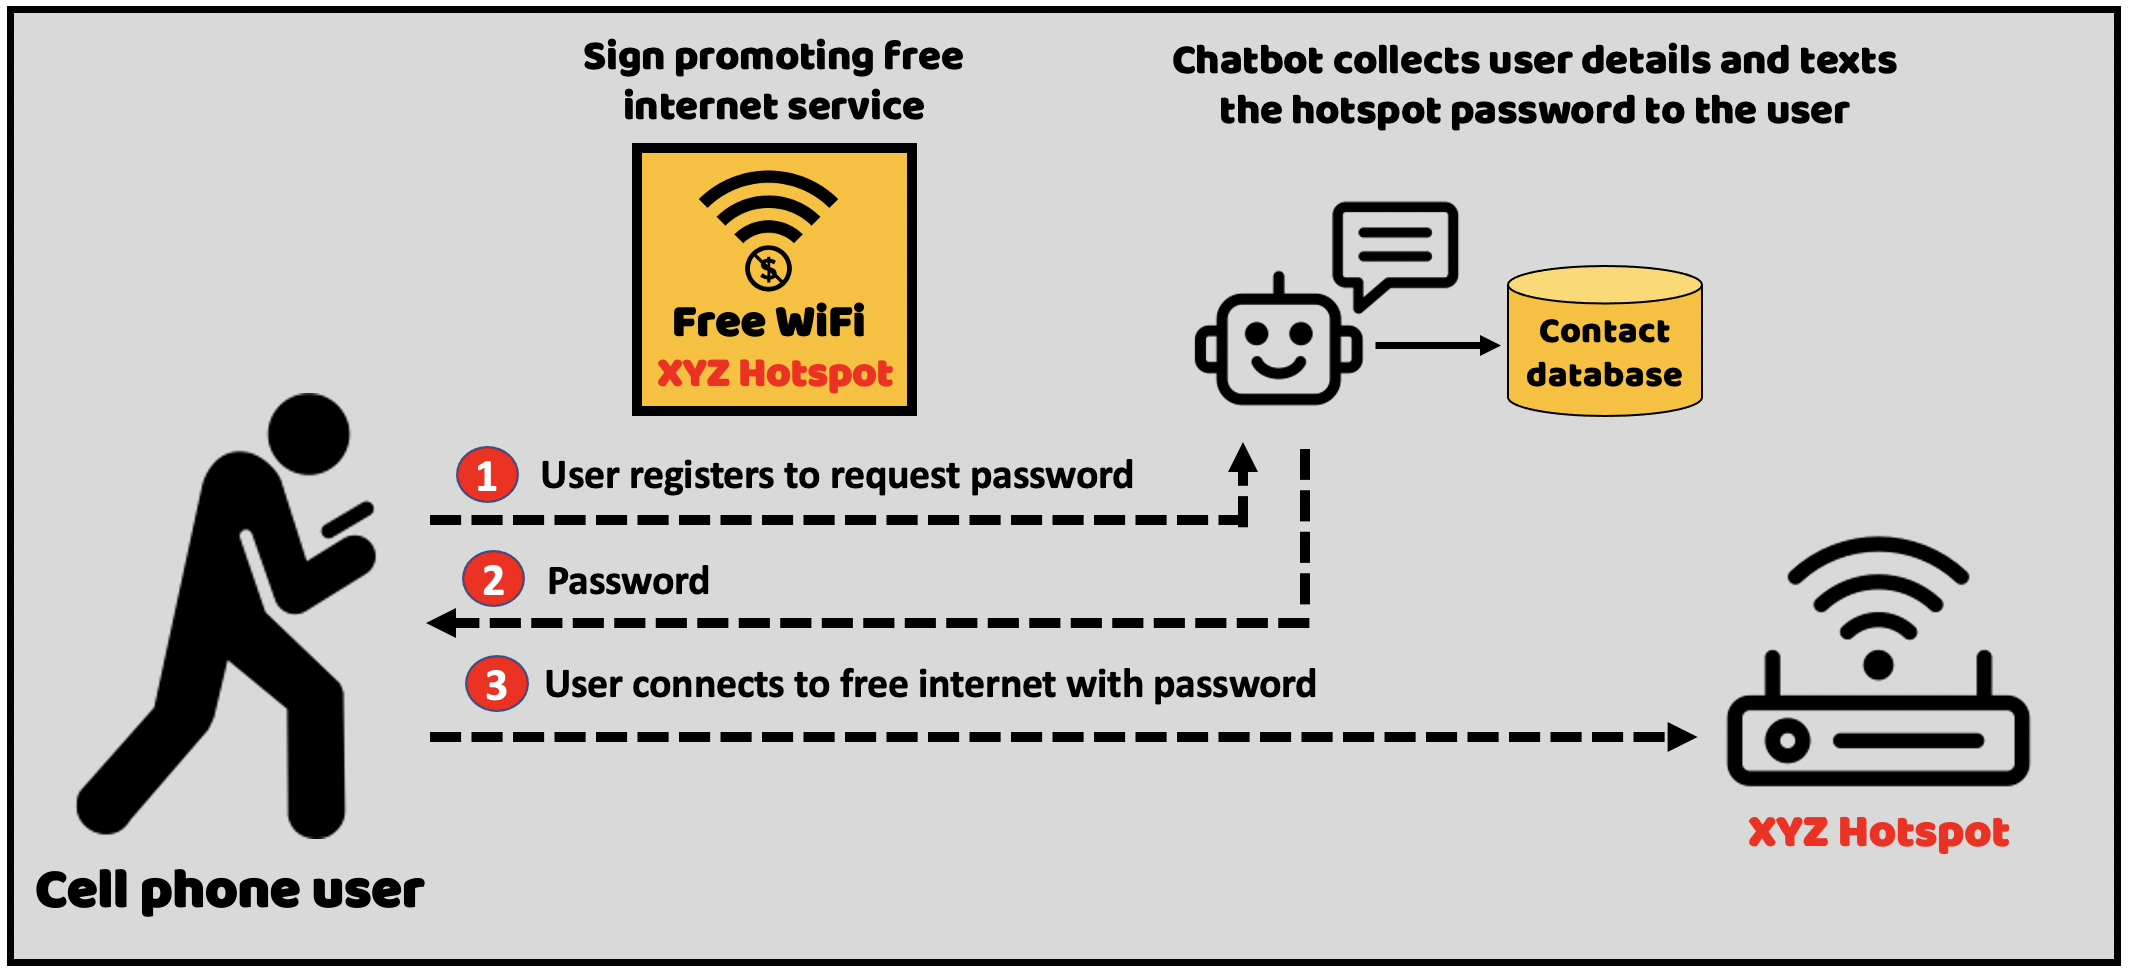 Use-free-internet-hotspots-to-build-double-opt-in-contact-lists-of-potential-voters